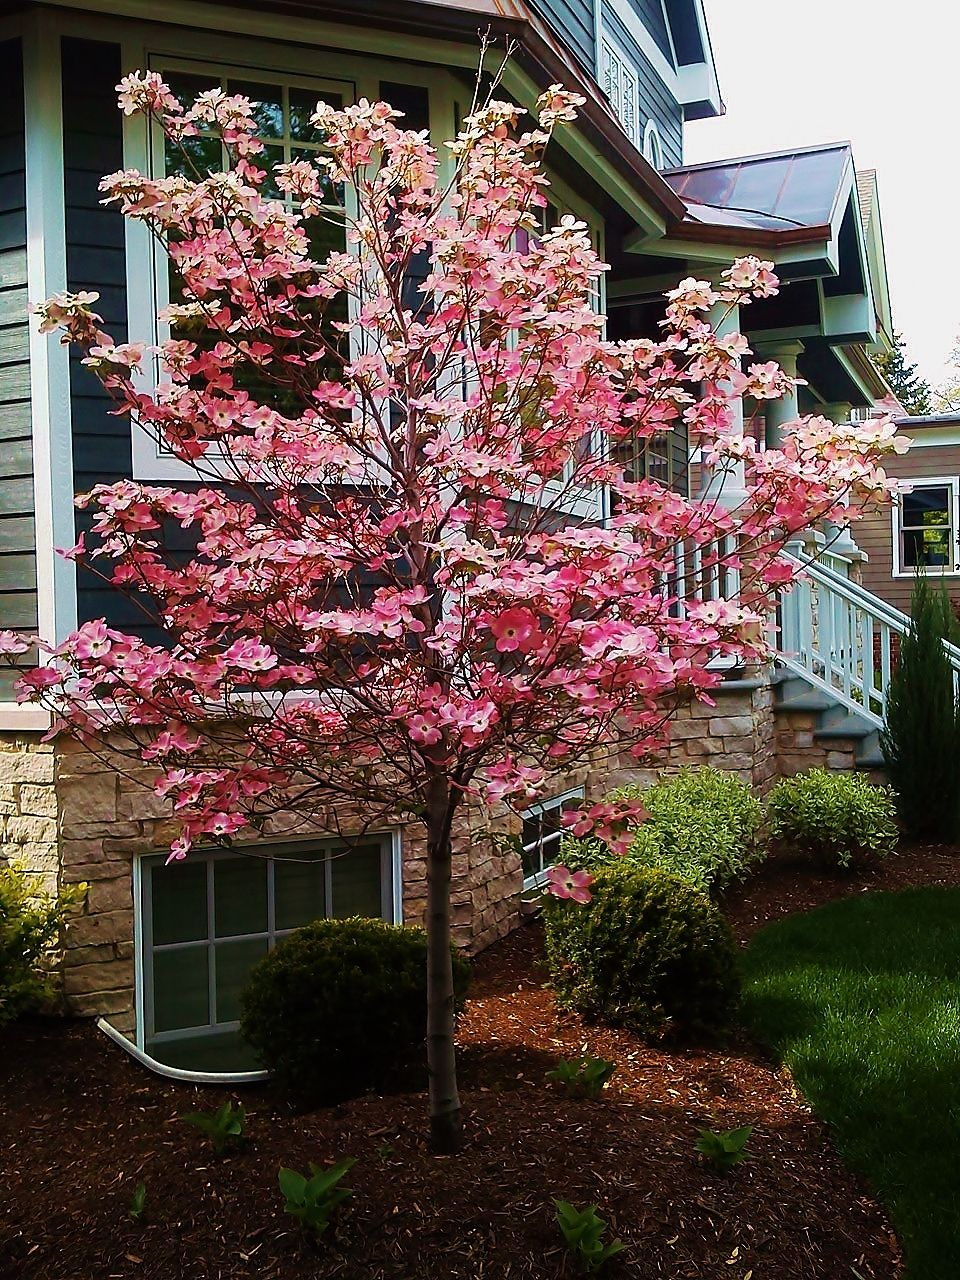 Hard not to love the Cherokee Brave Dogwood. It blooms for